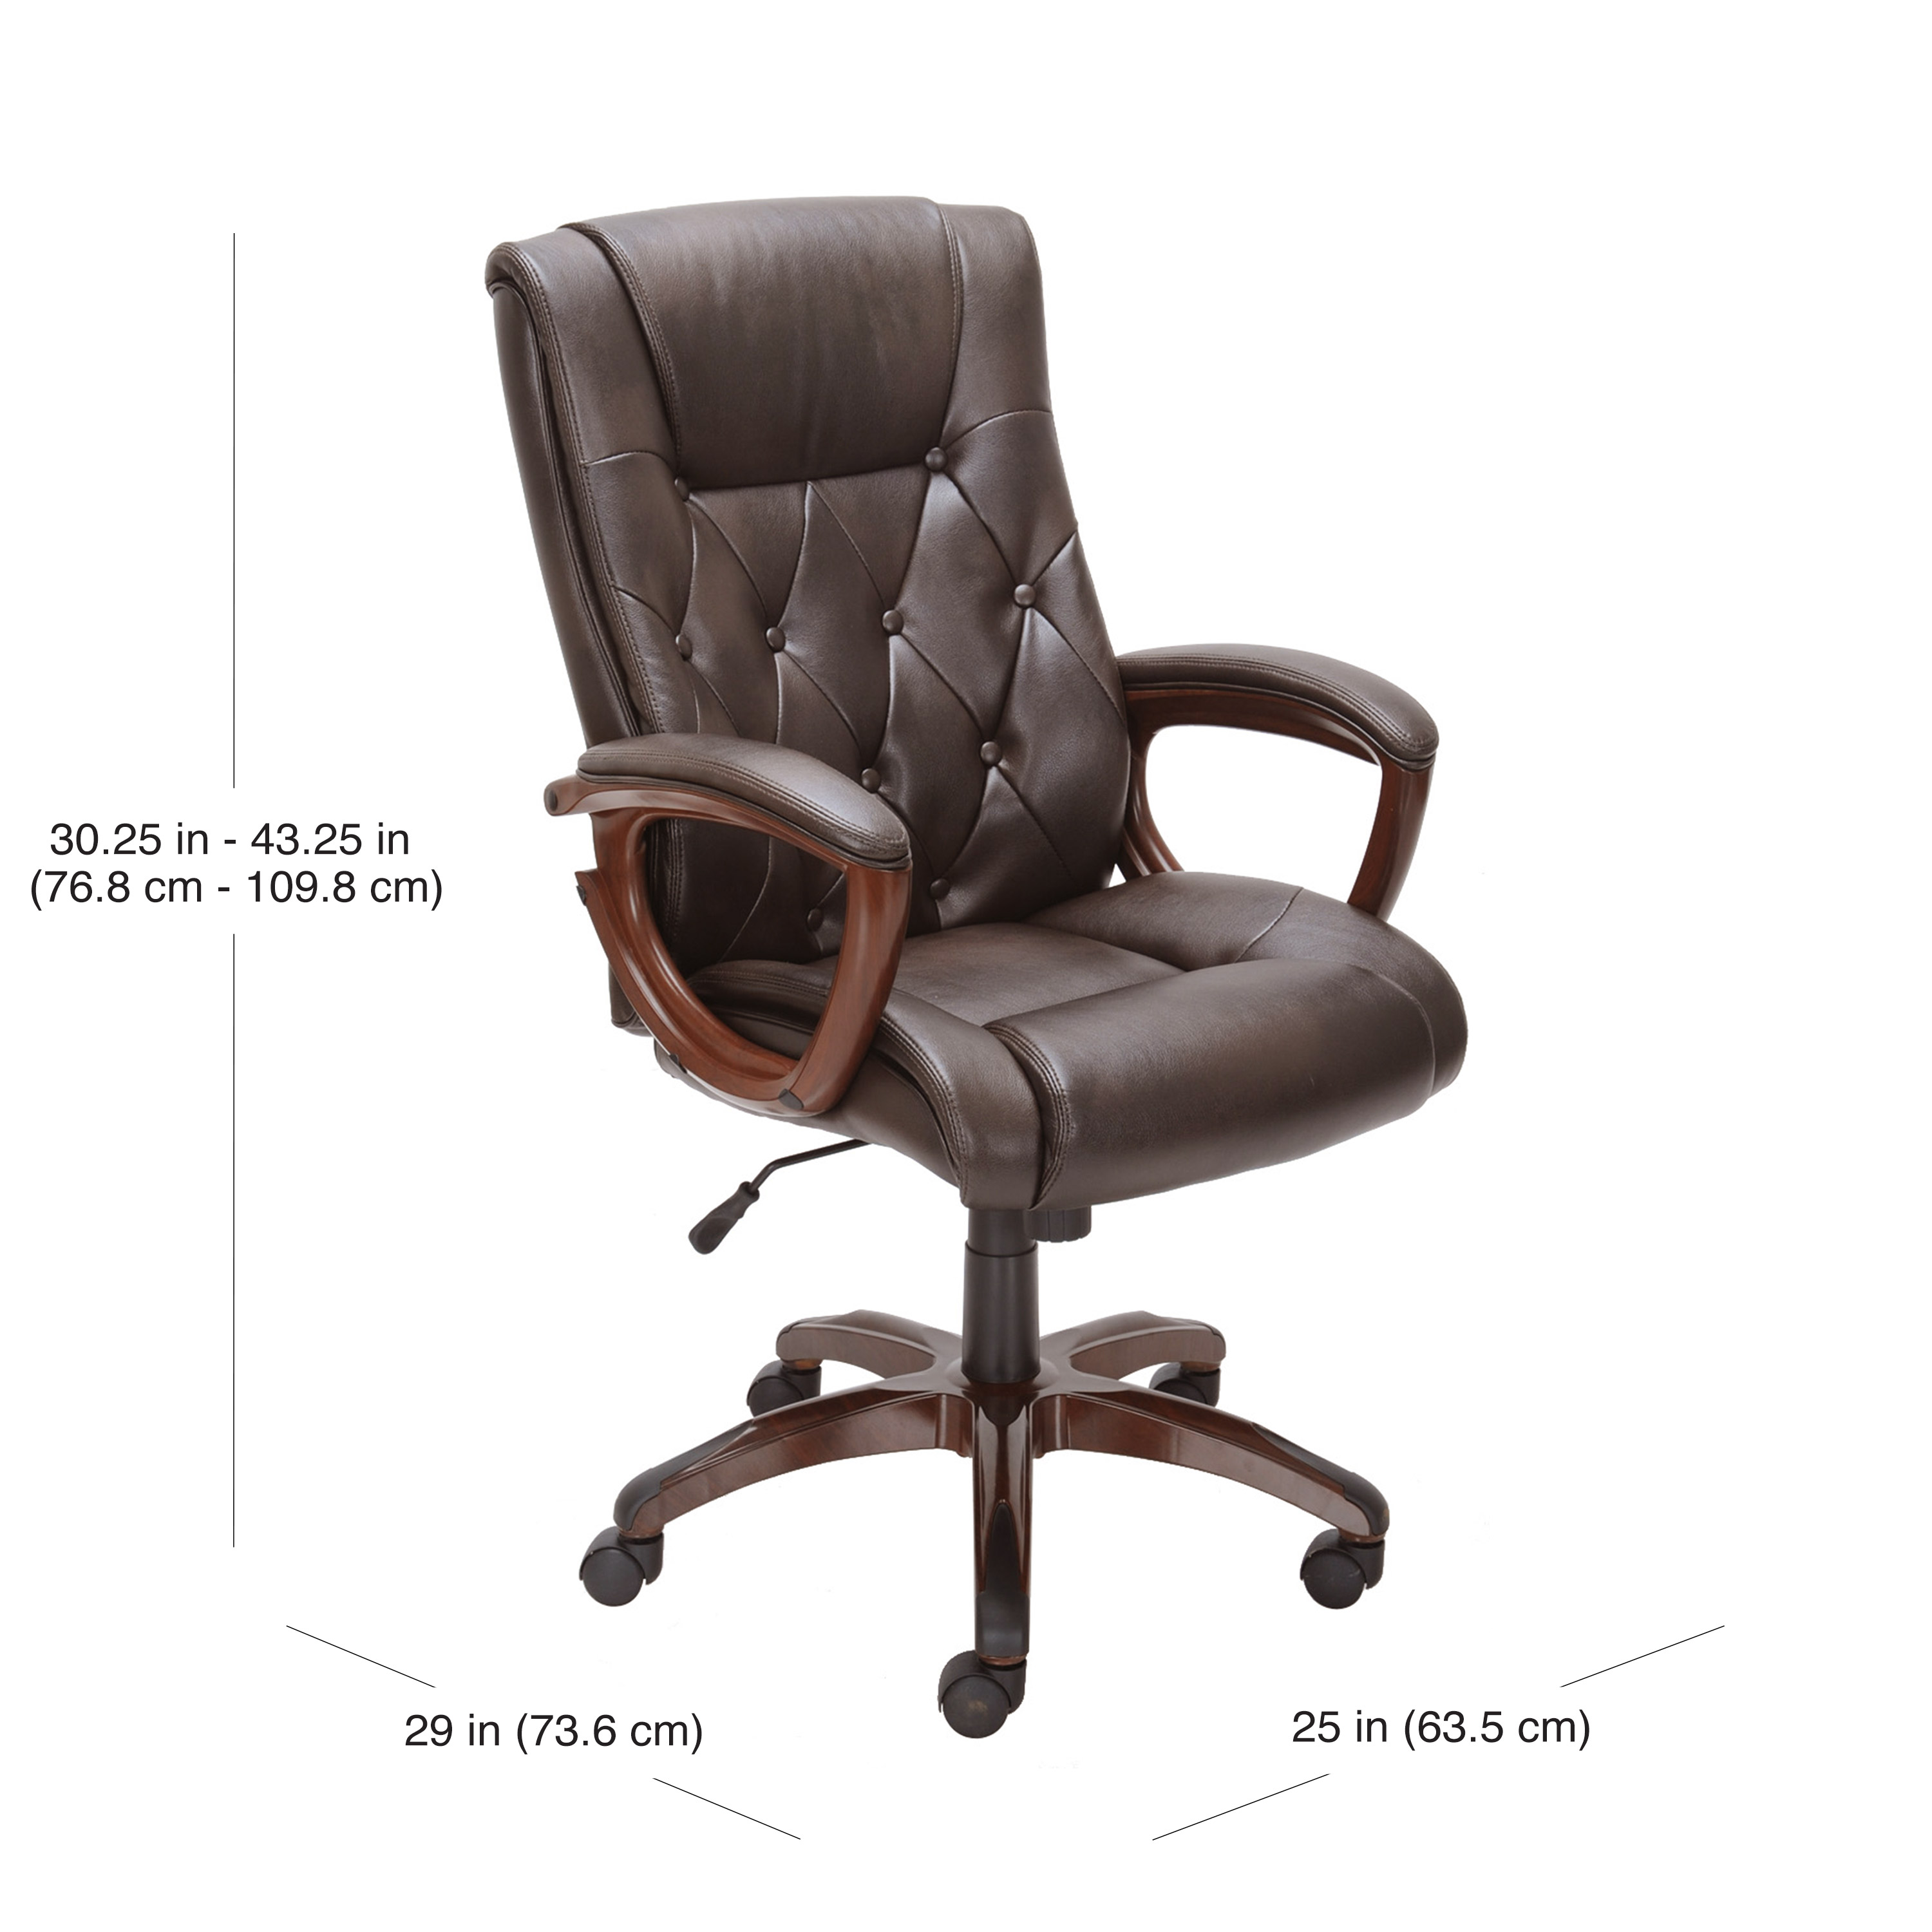 Peachy Better Homes And Gardens Bonded Leather Executive Office Short Links Chair Design For Home Short Linksinfo